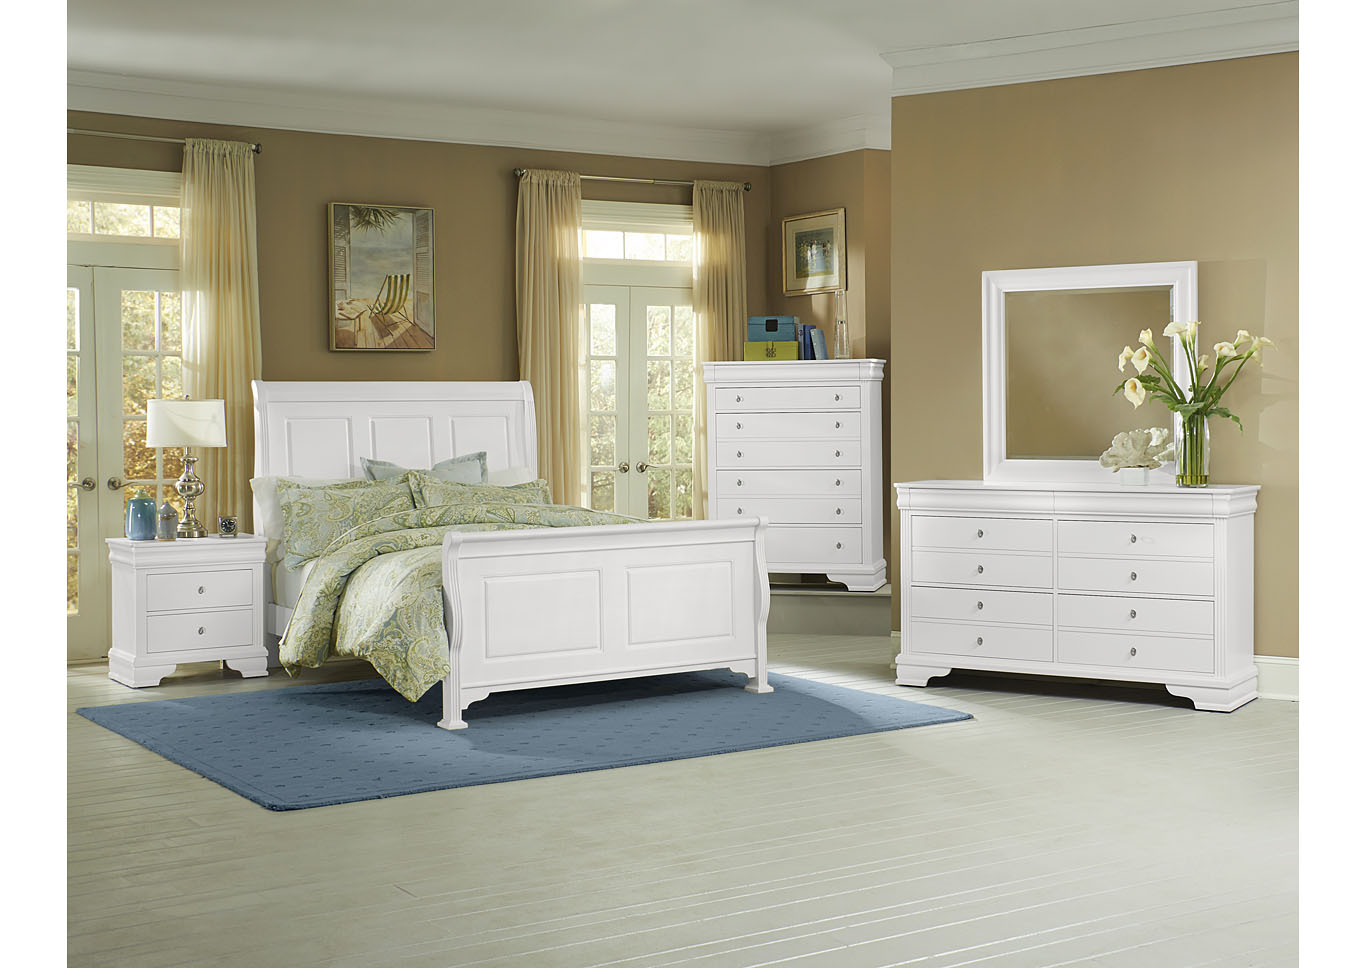 French Market Soft White Queen Poster Bed w/ Dresser, Mirror and Drawer Chest,Vaughan-Bassett